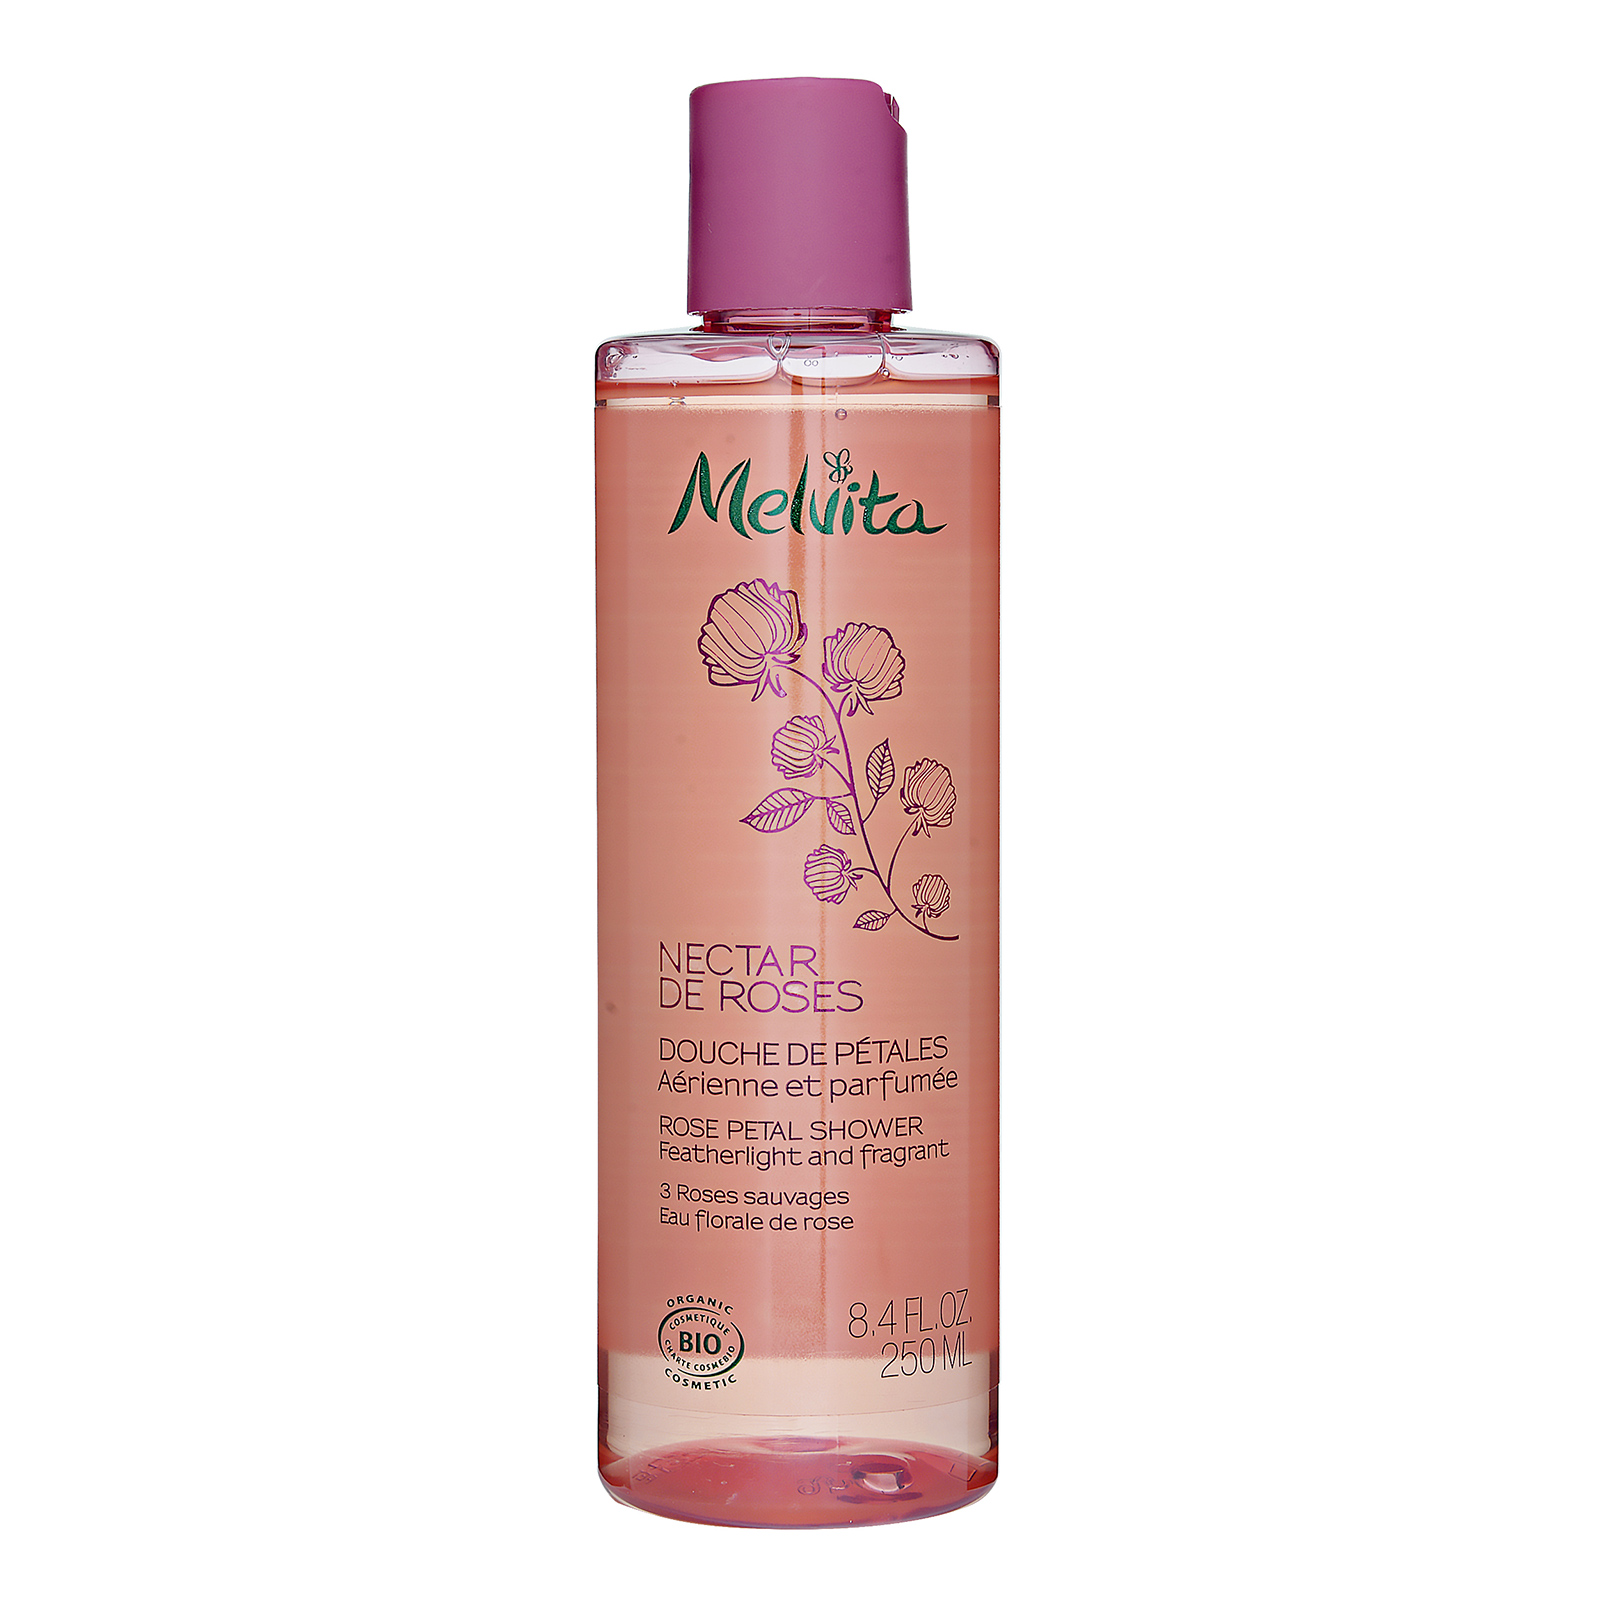 Melvita Nectar de Roses Rose Petal Shower 8.4oz, 250ml